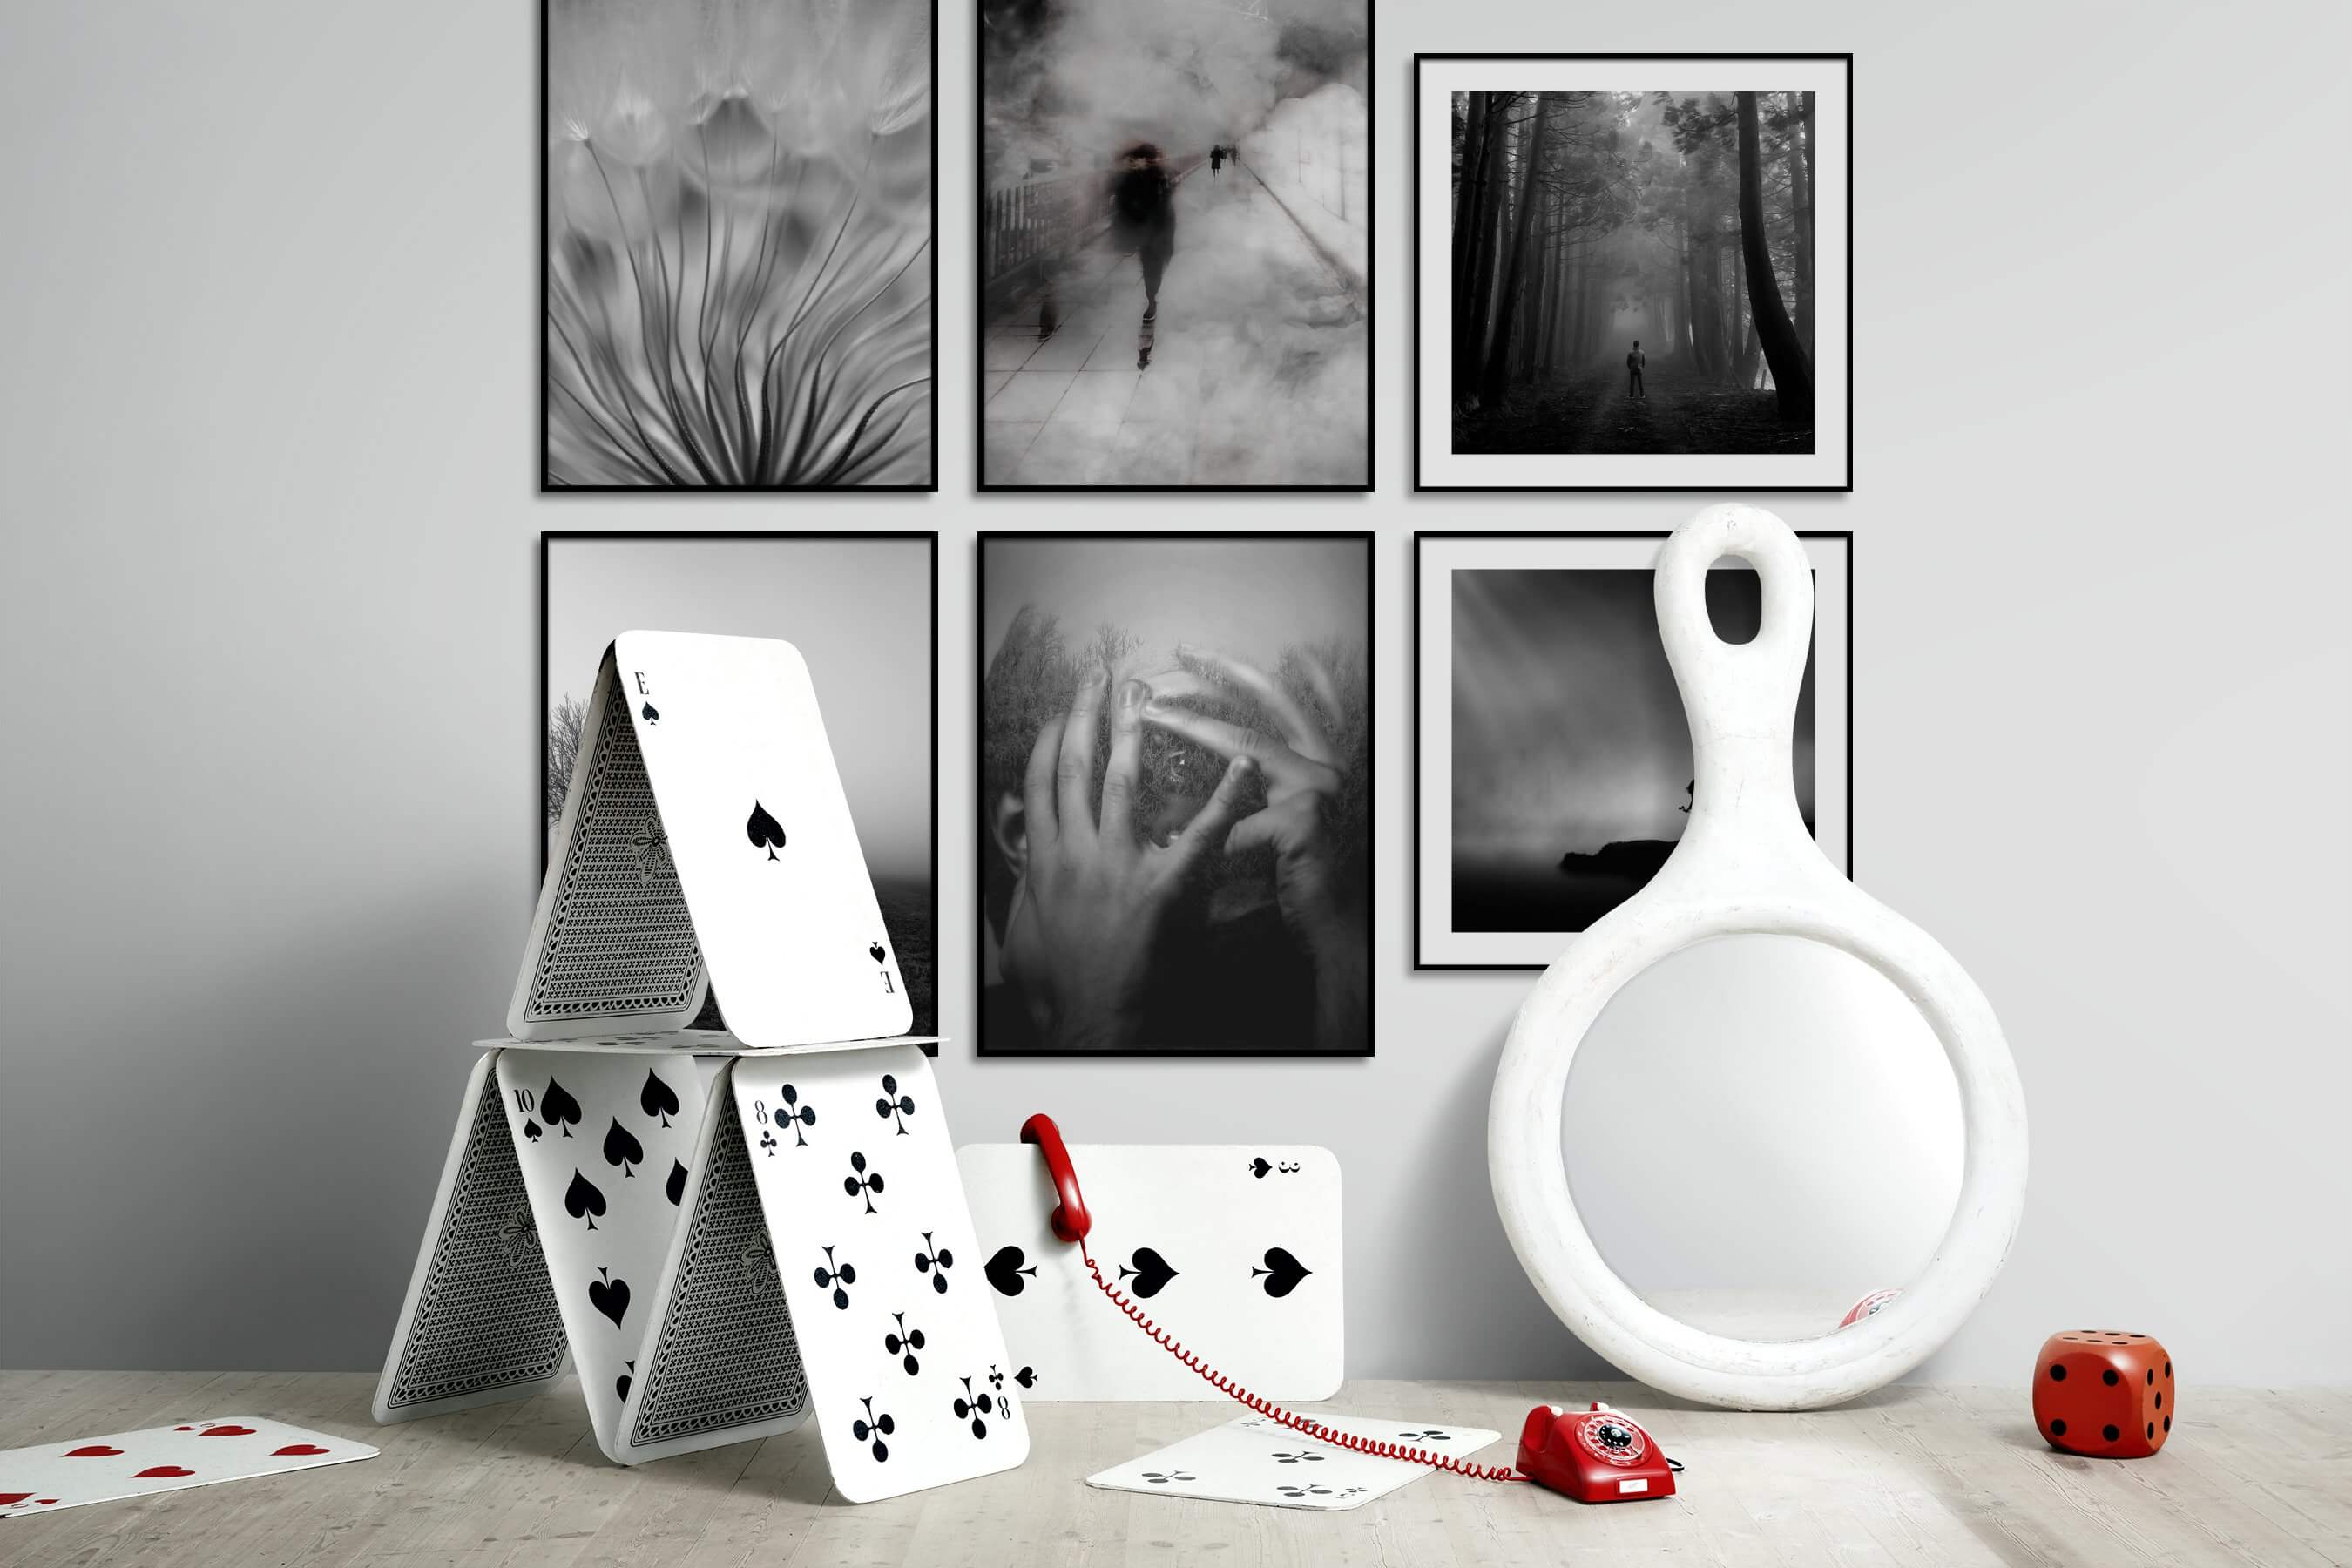 Gallery wall idea with six framed pictures arranged on a wall depicting Black & White, Flowers & Plants, Artsy, For the Moderate, For the Minimalist, Country Life, Nature, and Mindfulness